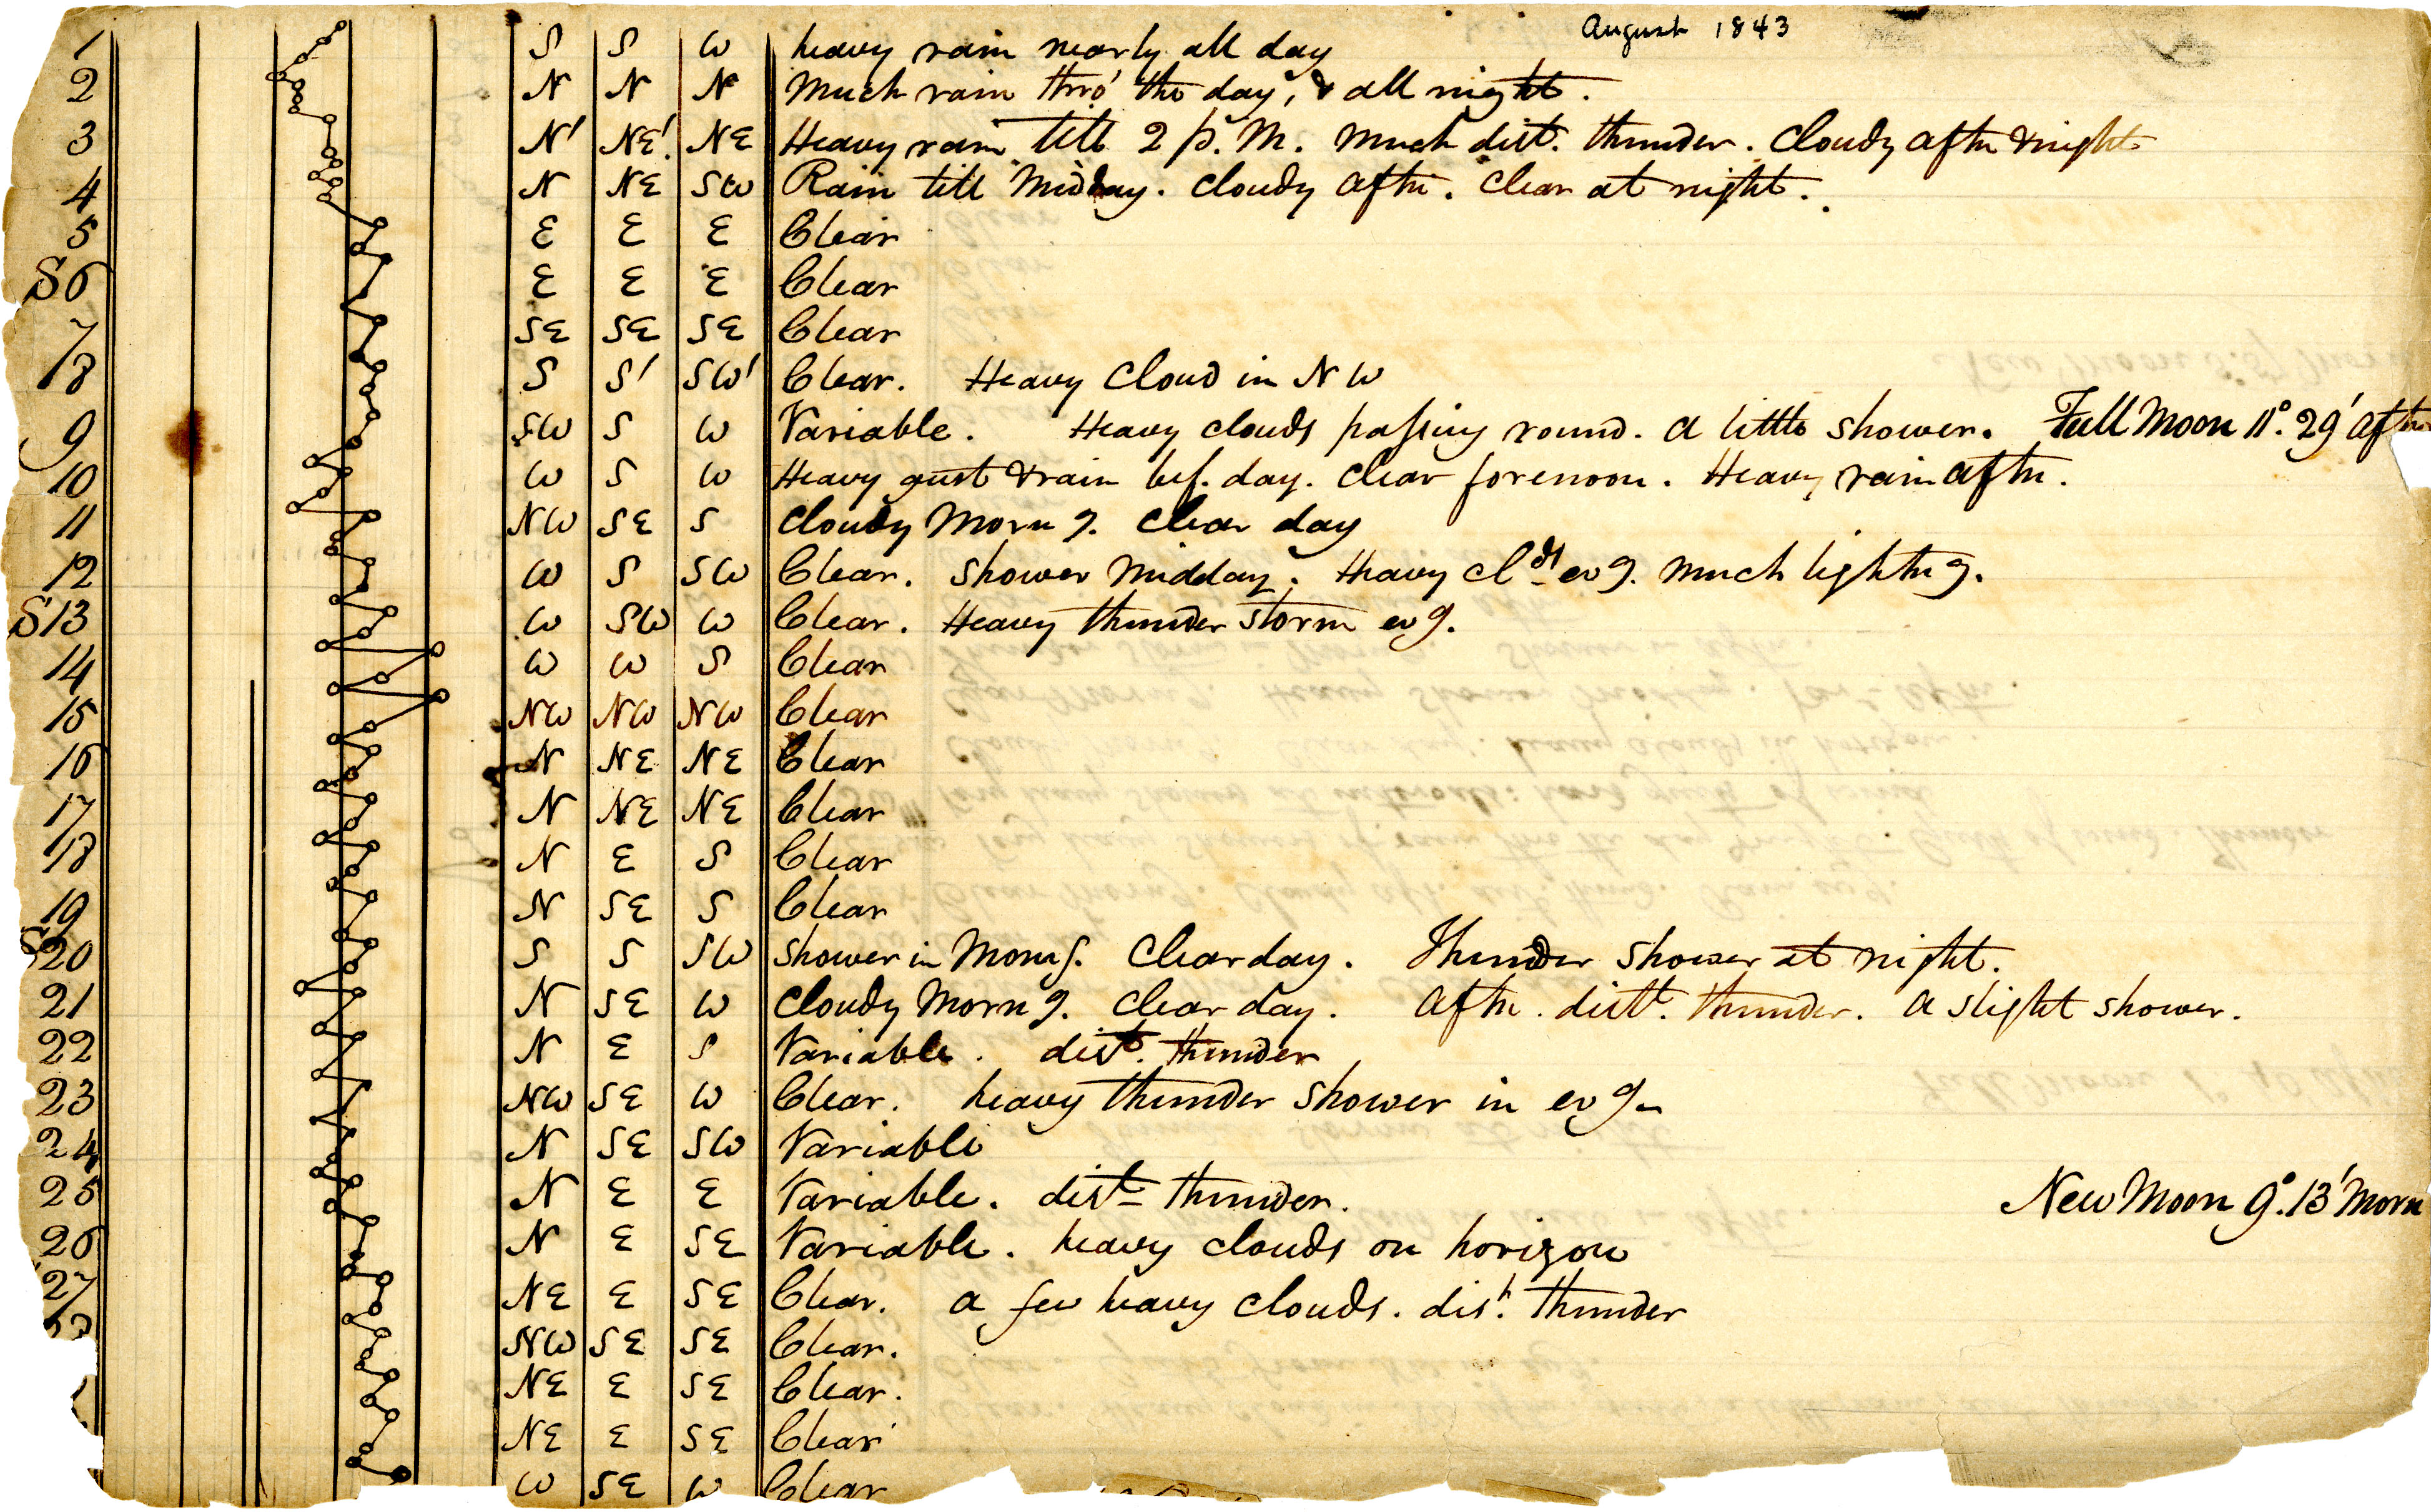 Volume 1: Daily Meteorological Observations, August 1843